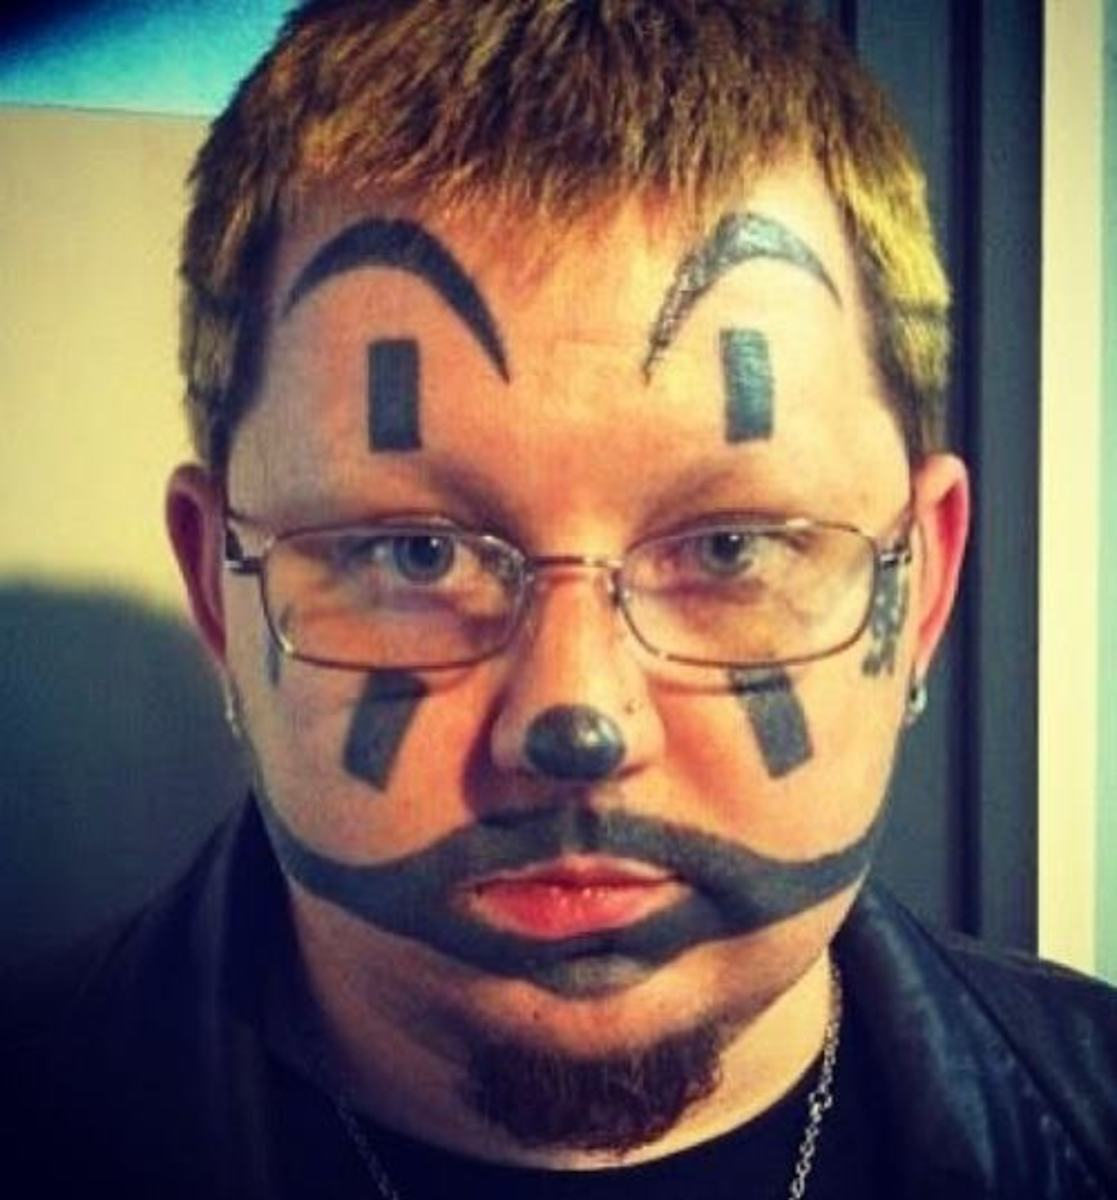 bad-tattoos-juggalo